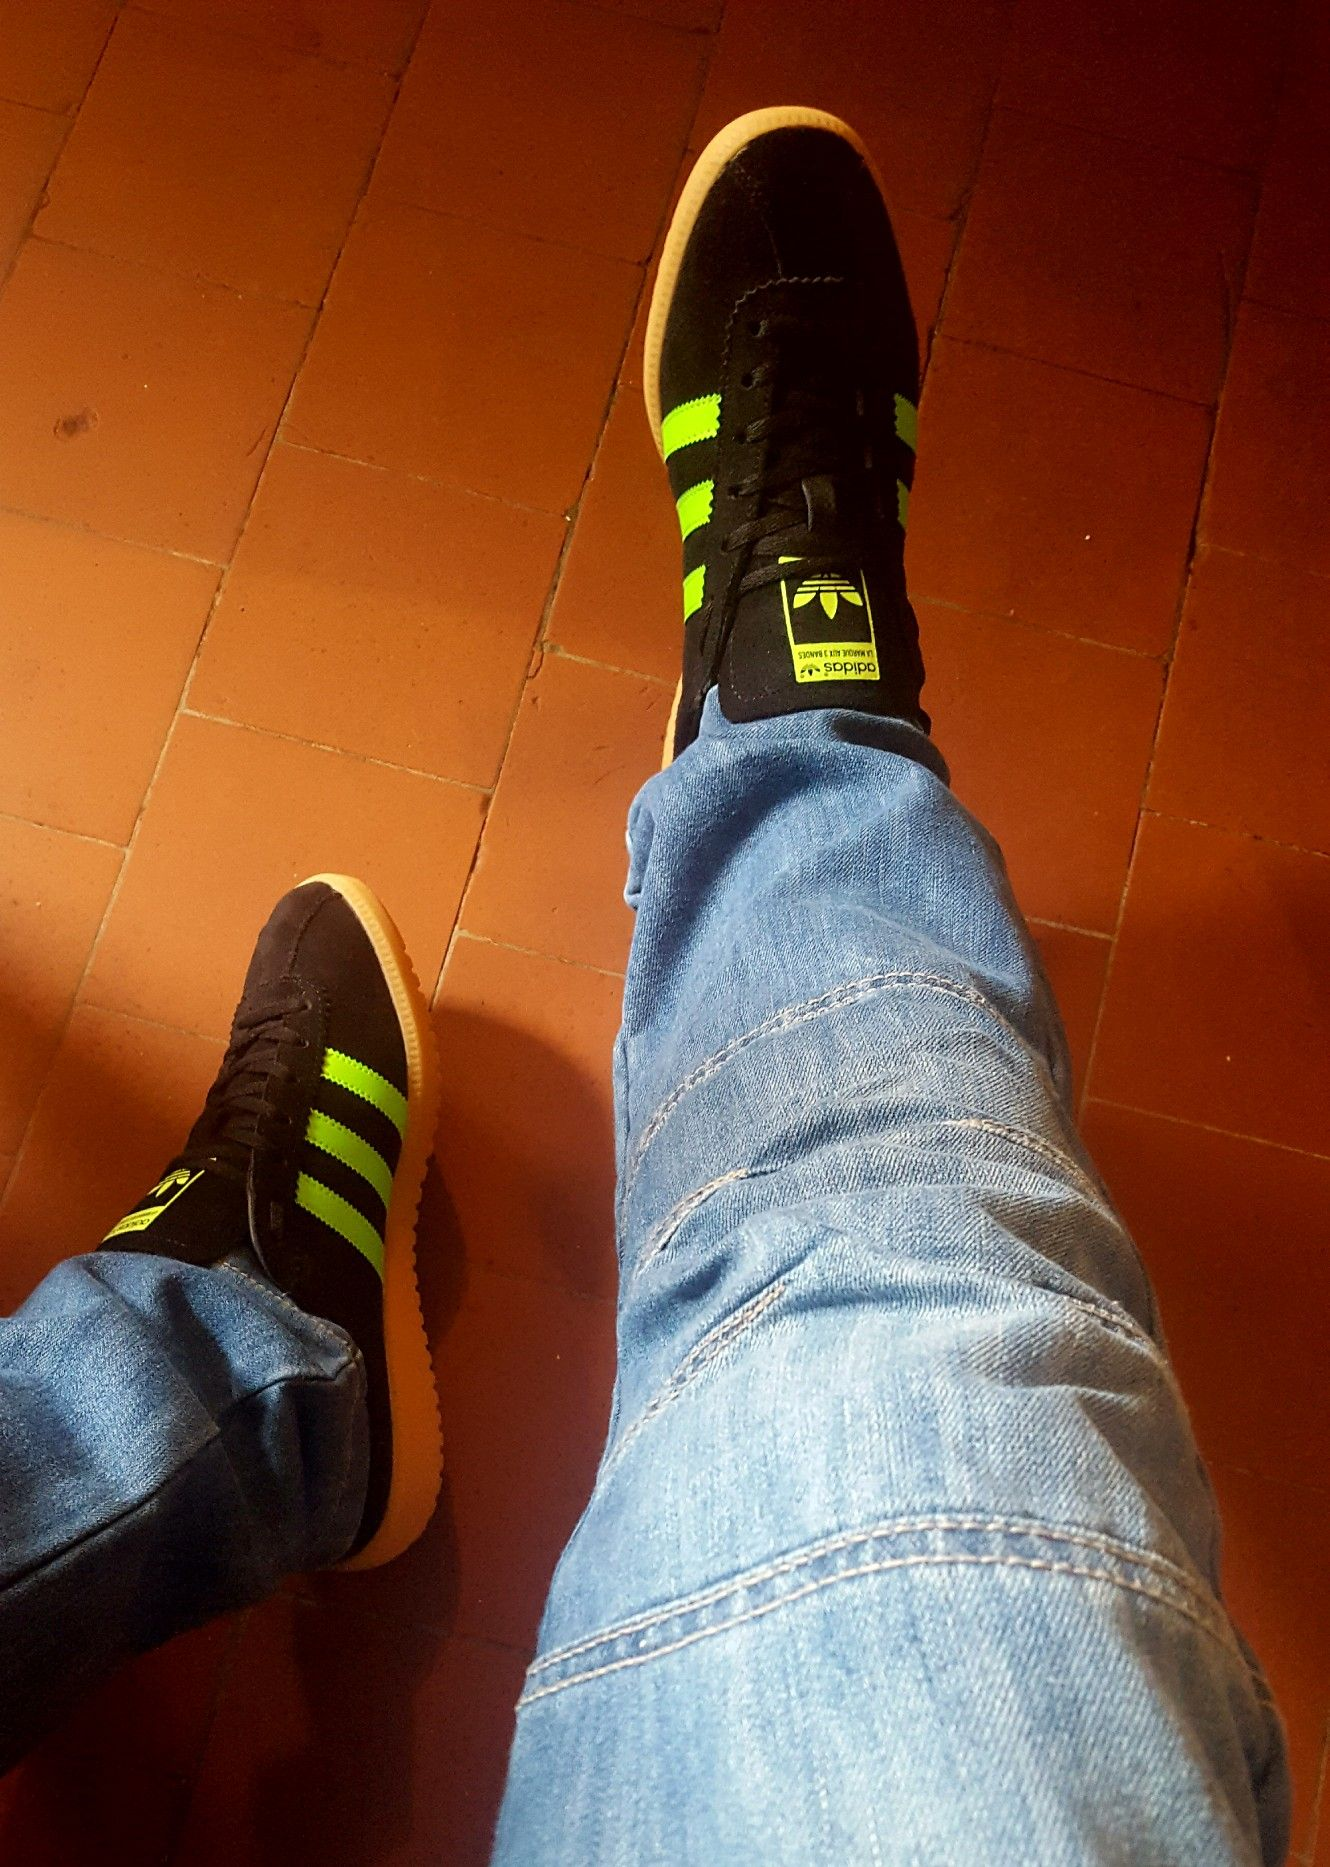 b5b41a3b04c3 Adidas Bermuda look the nuts with a nice pair of jeans